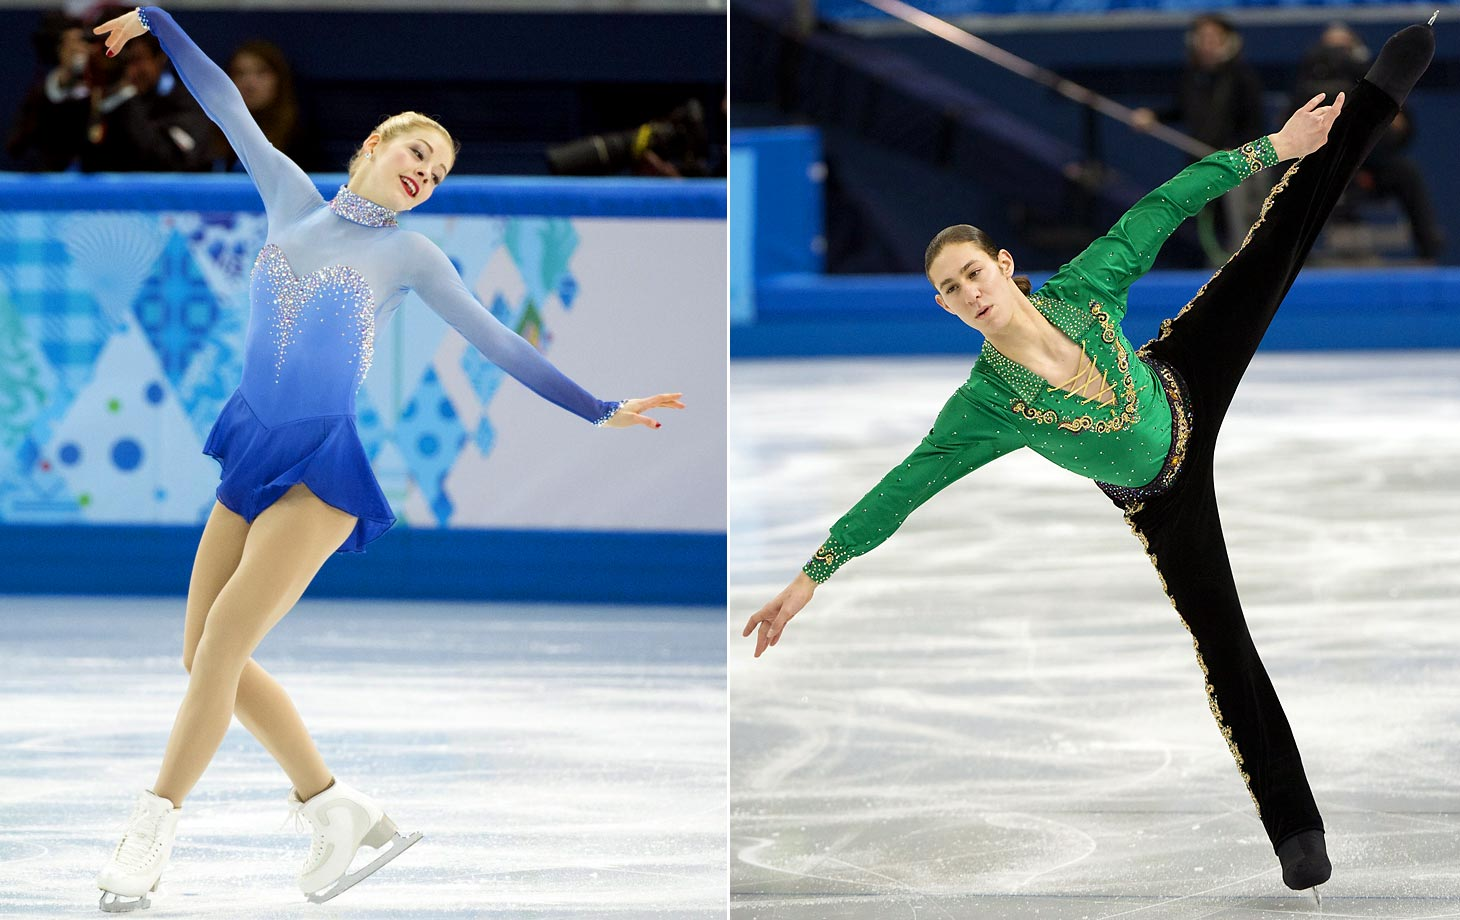 Sochi did not yield very good results for American figure skaters. Though Meryl Davis and Charlie White won the gold medal in the ice dance event, the team failed to capture any other gold medals. The United States women did not win a single medal, the second straight Olympics during which the women have failed to bring home any hardware. The U.S. also earned bronze in the team free dance, but overall the Americans did not quite attain the team's desired medal count.